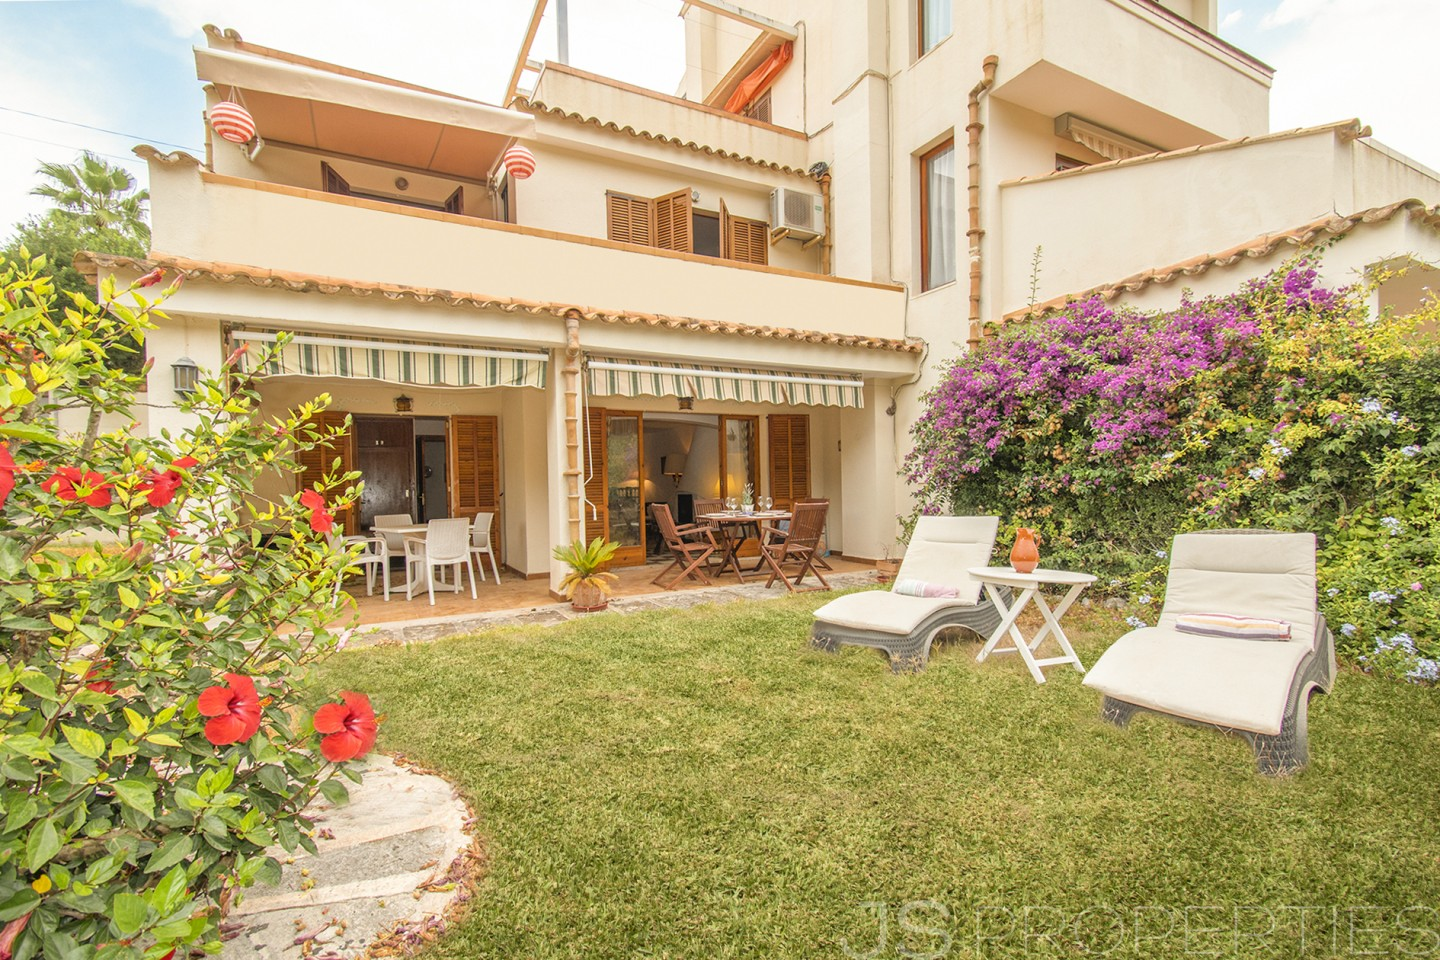 LOVELY APARTMENT IN THE QUIET RESIDENTIAL AREA OF CALA SAN VICENTE